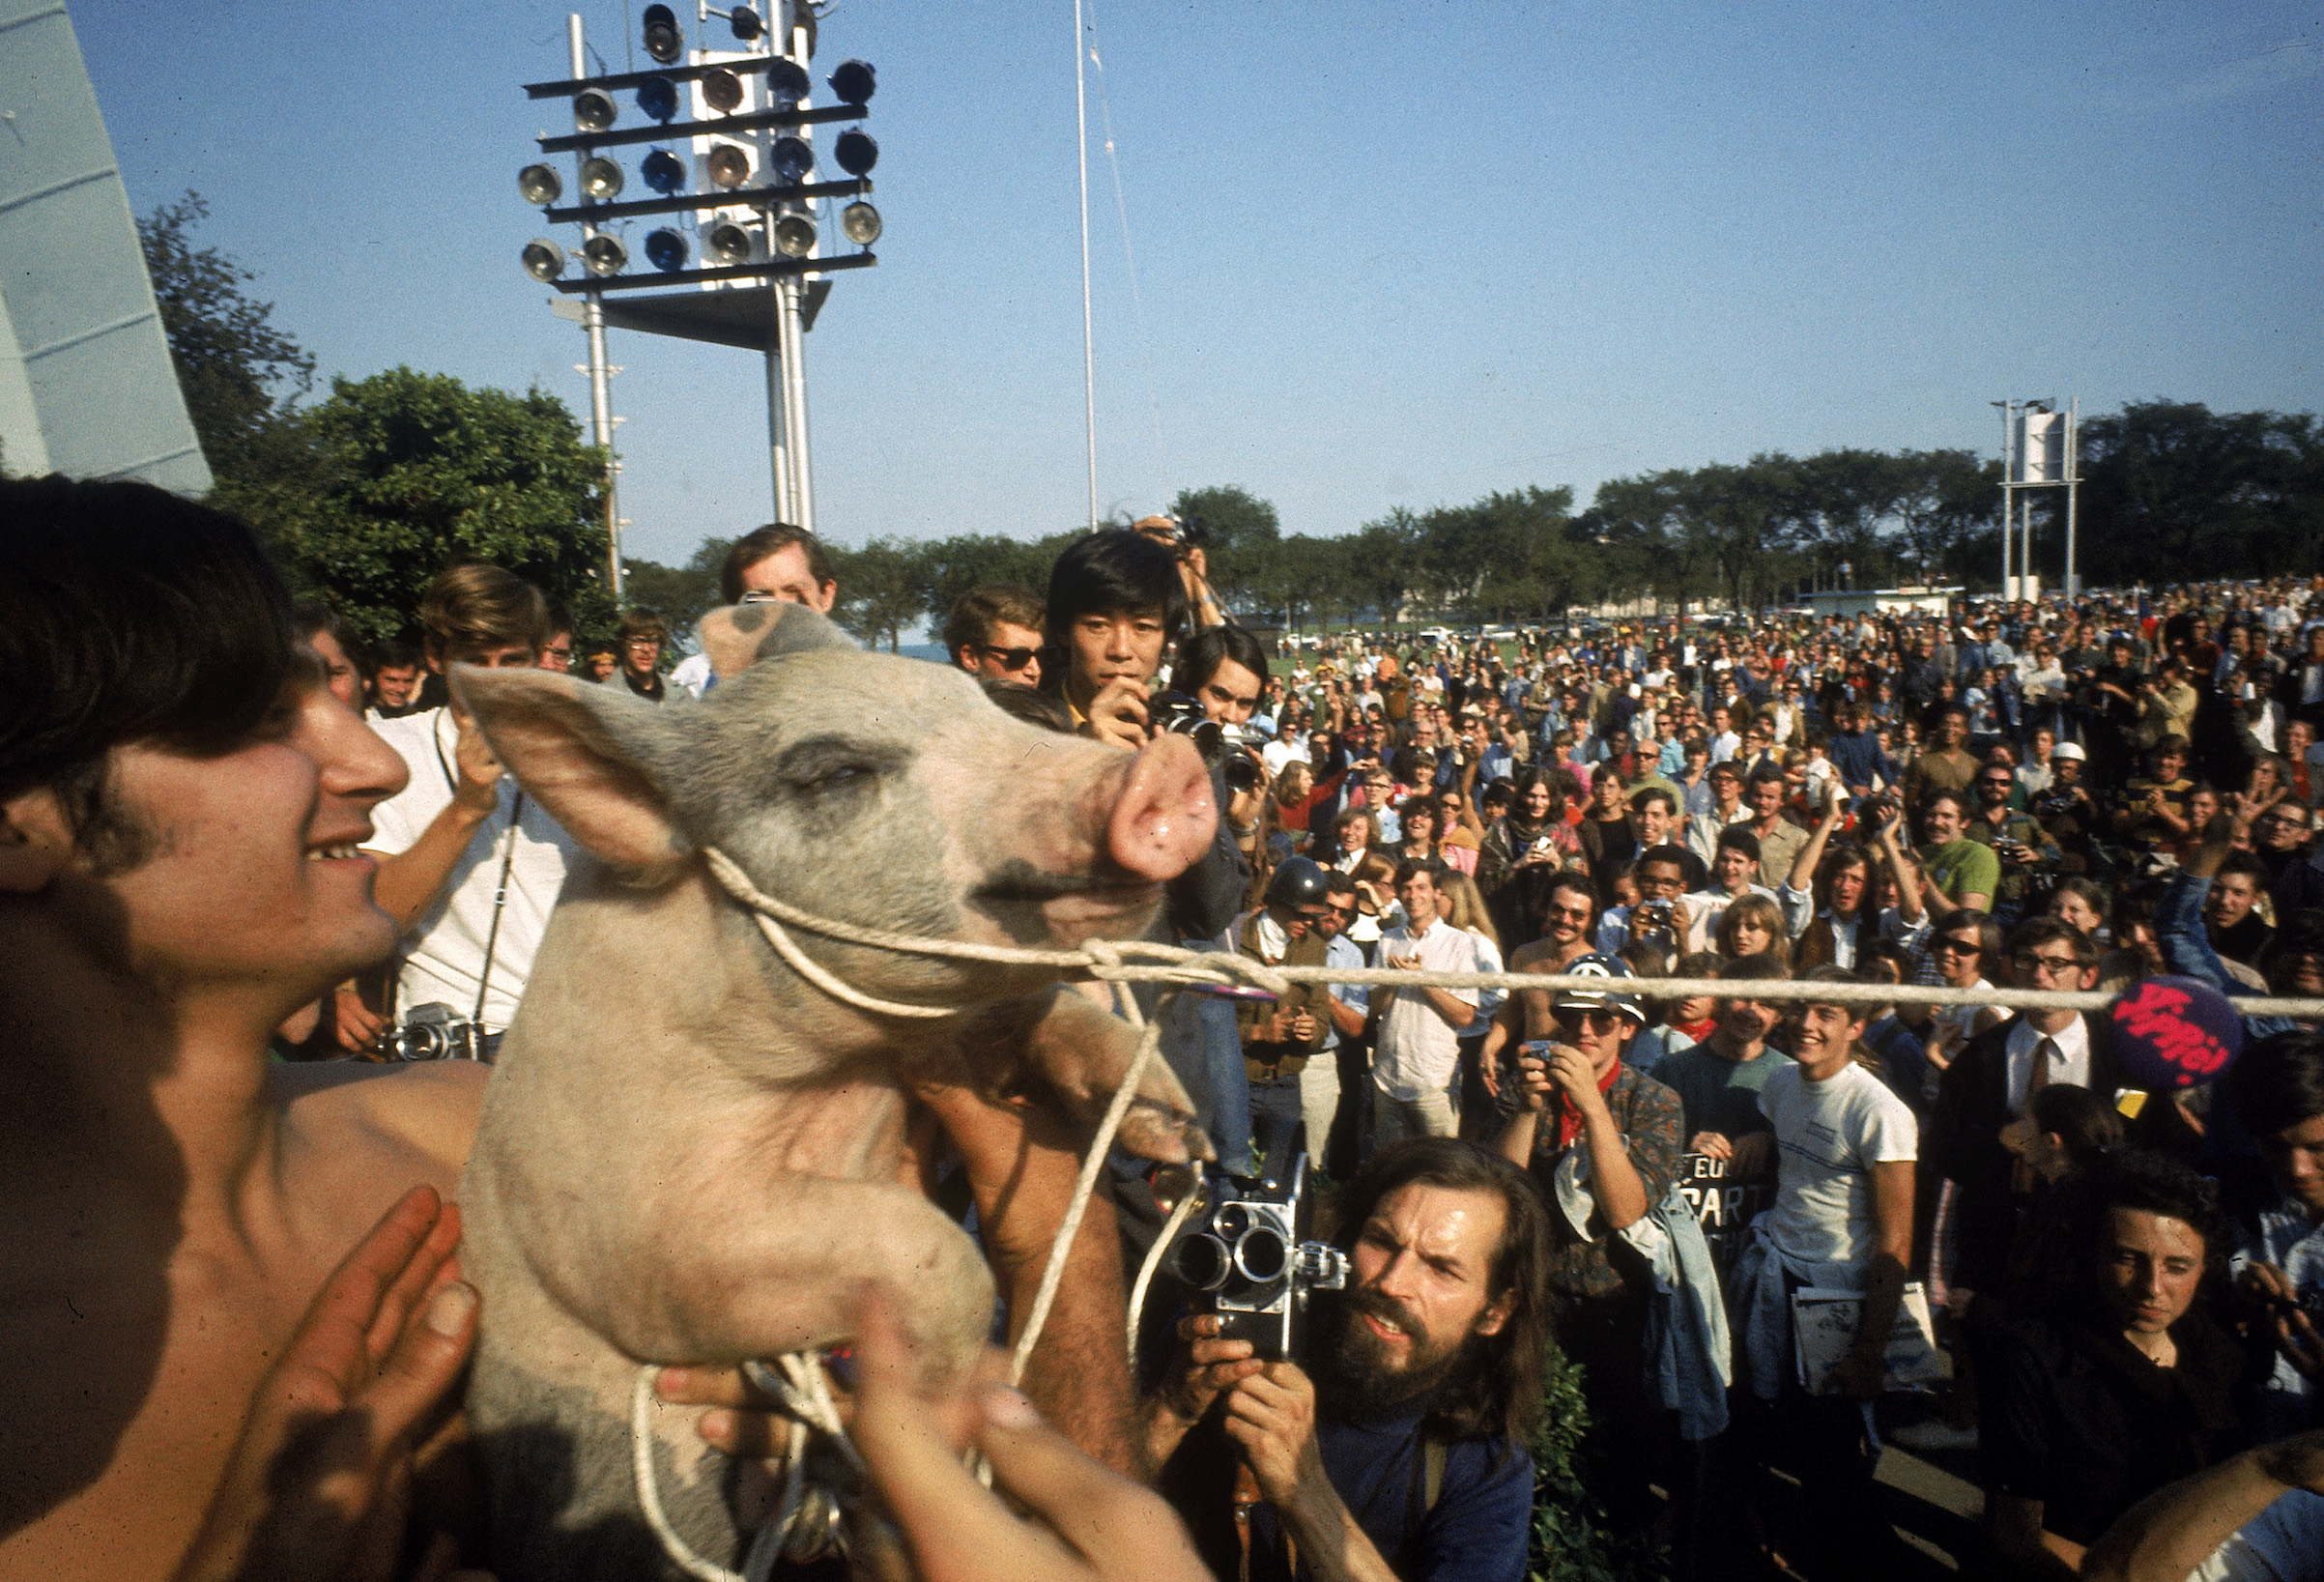 Yippies parading their Presidential candidate, Pigasus the pig, during the 1968 Democratic National Convention